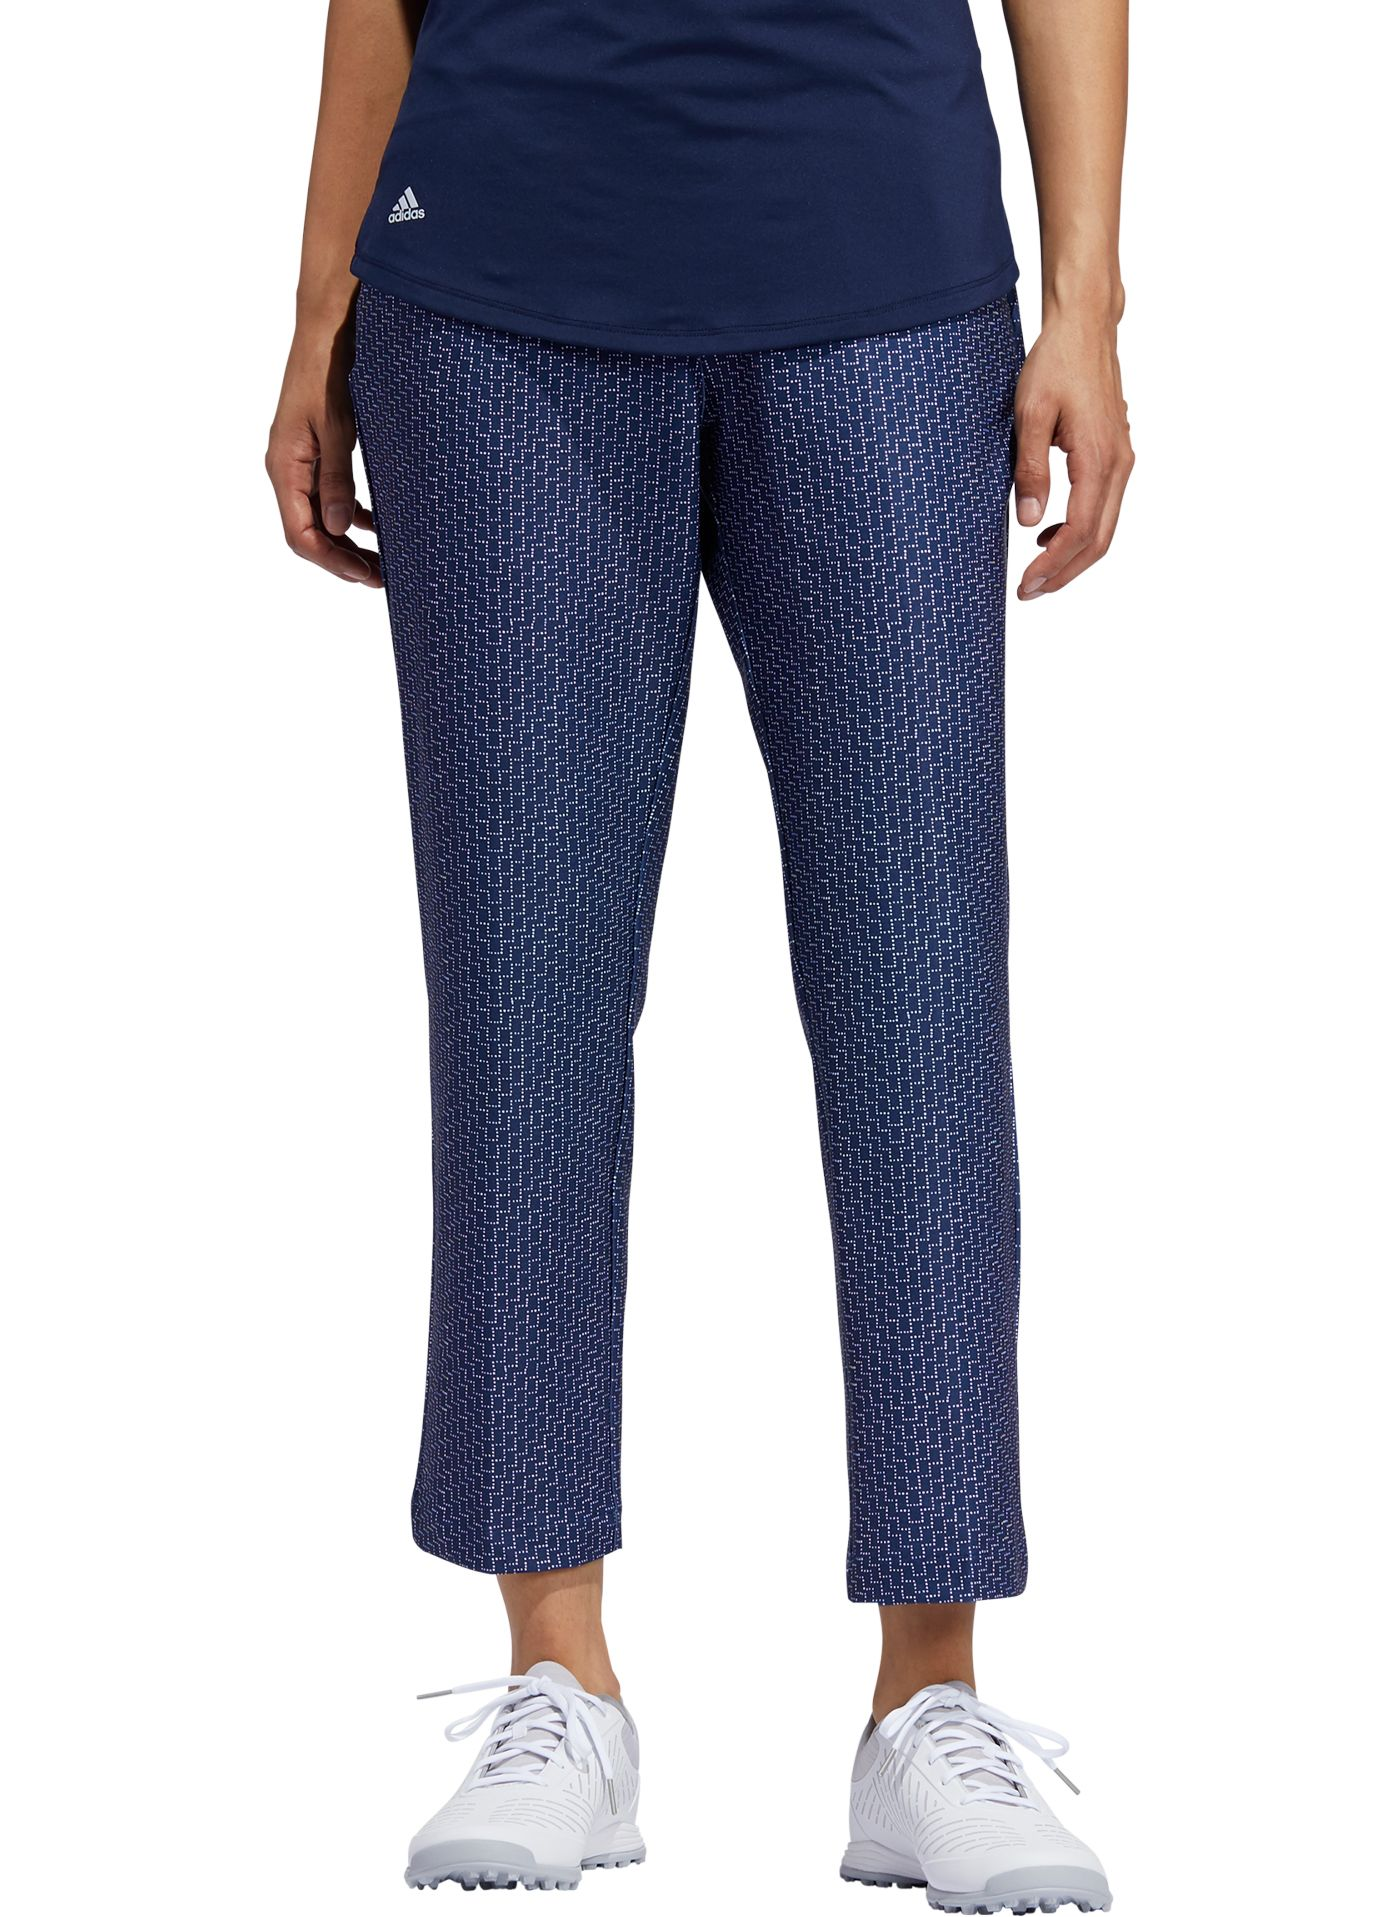 adidas Women's Printed Cropped Golf Pants